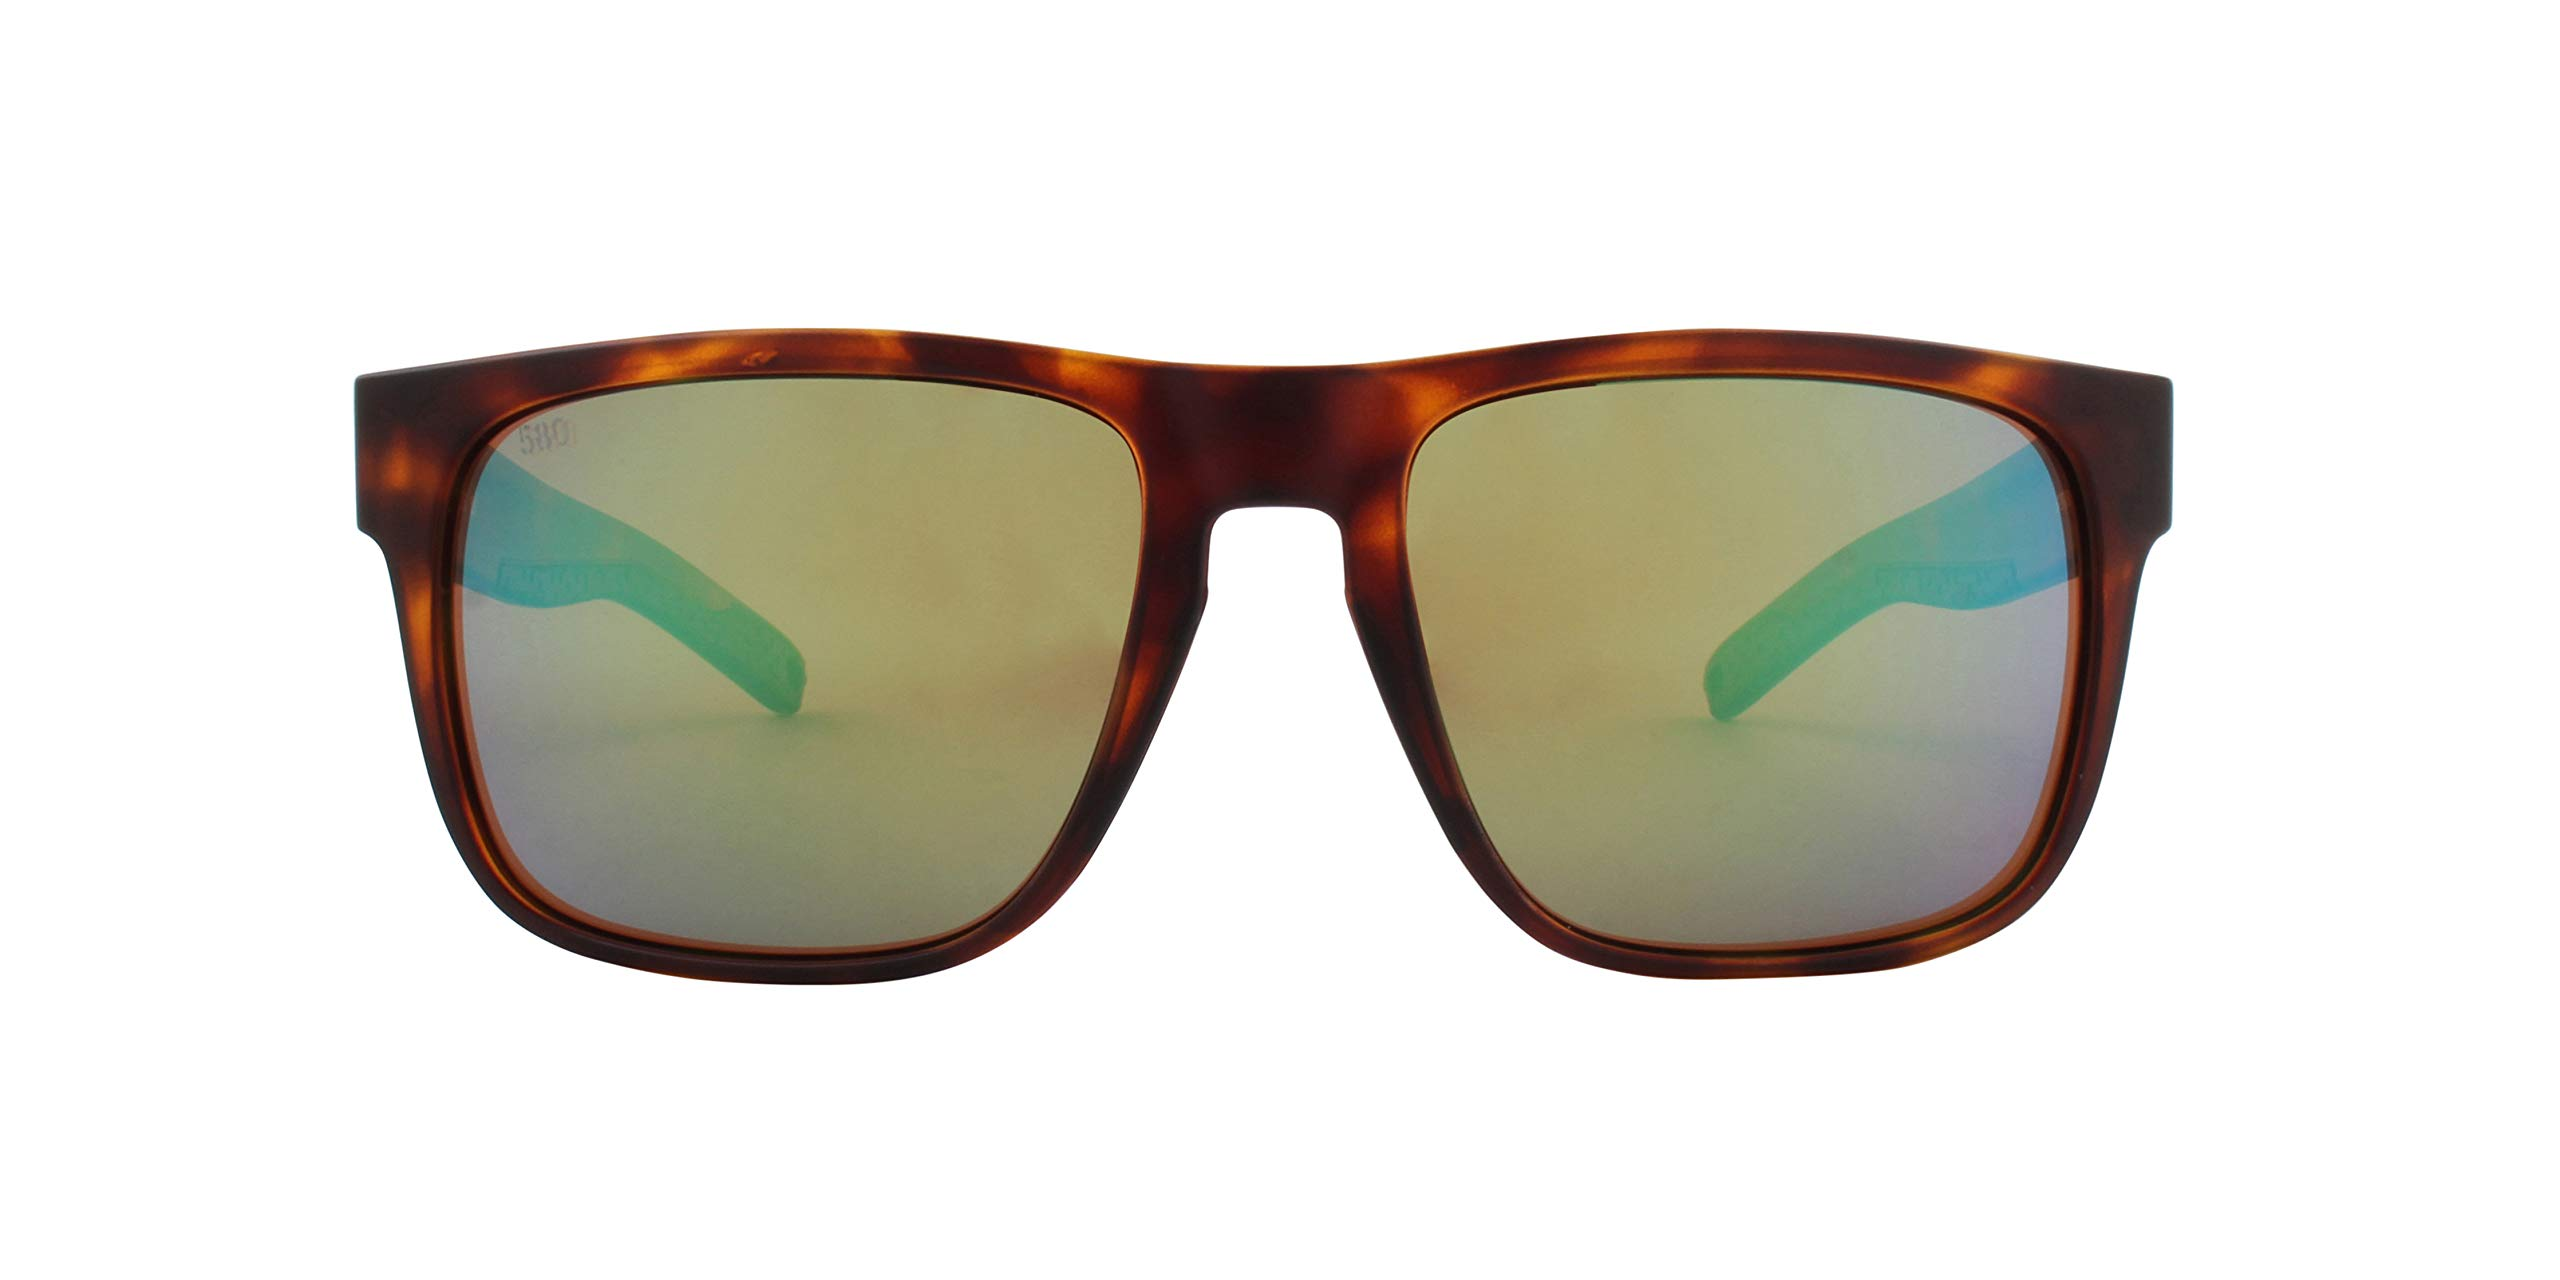 Costa Del Mar Spearo Sunglasses Matte Tortoise 580G Polarized Green Mirror Glass         by Costa Del Mar